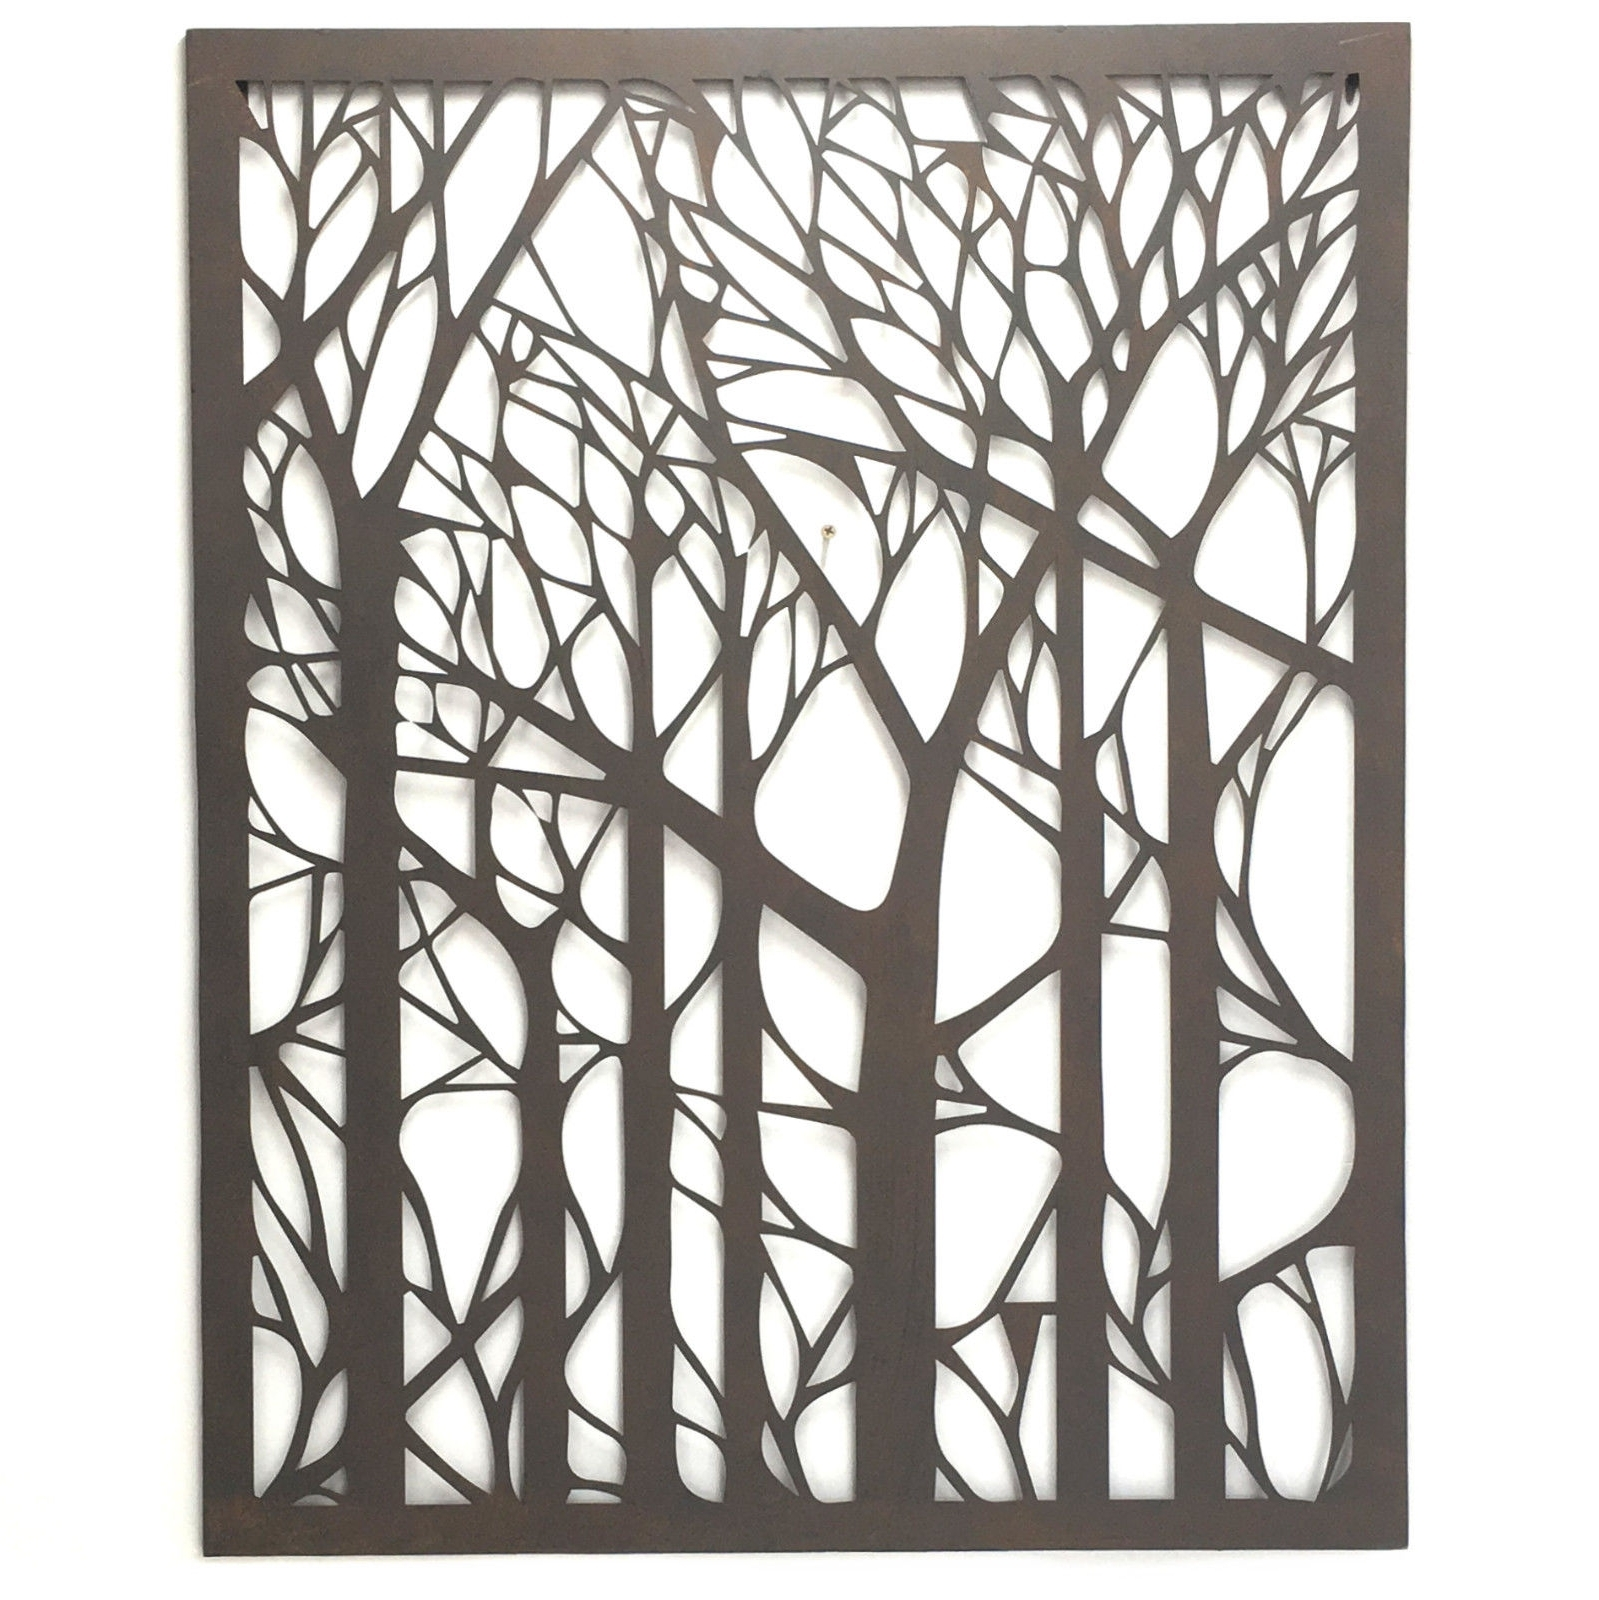 Wall Art Designs: Outdoor Wall Art Metal Tree Metal Wall Art For Most Up To Date Metal Large Outdoor Wall Art (View 12 of 15)